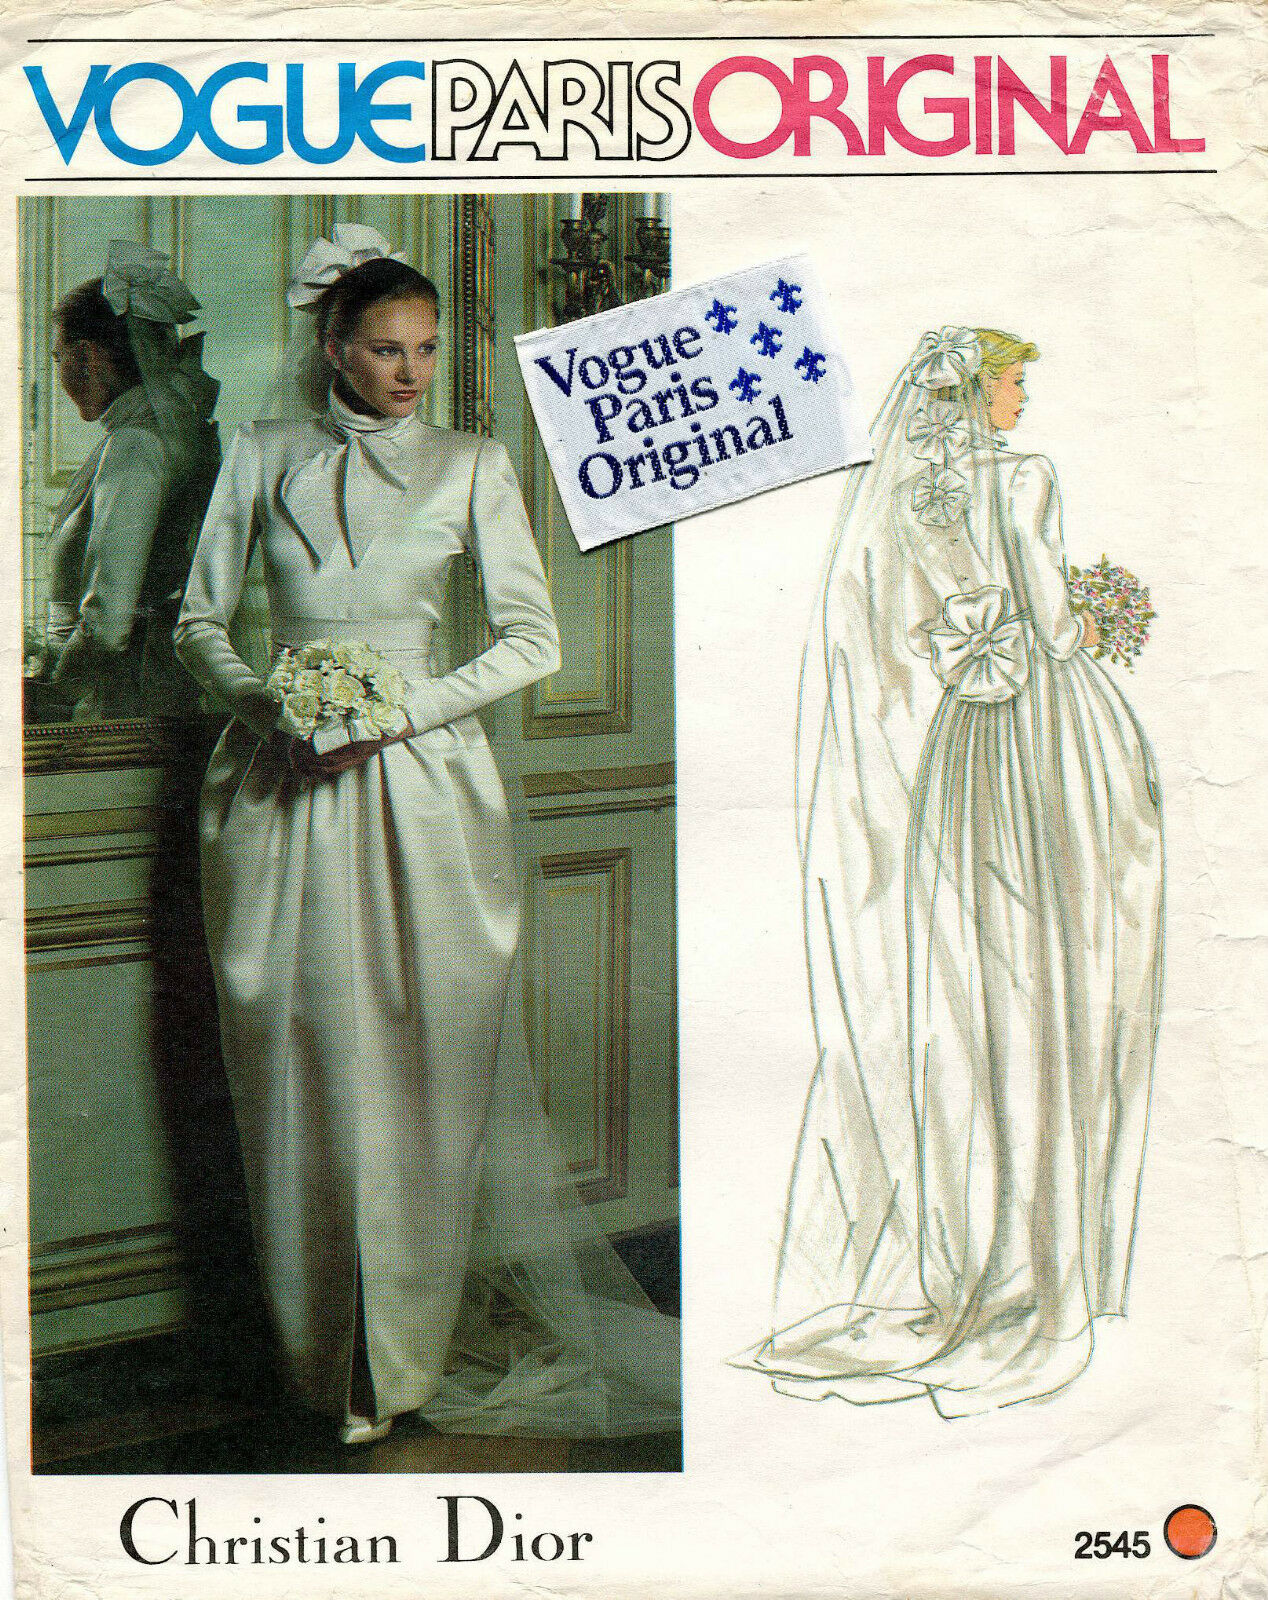 70\'S VTG VOGUE PARIS ORIGINAL Wedding Dress Christian Dior w/Lab ...